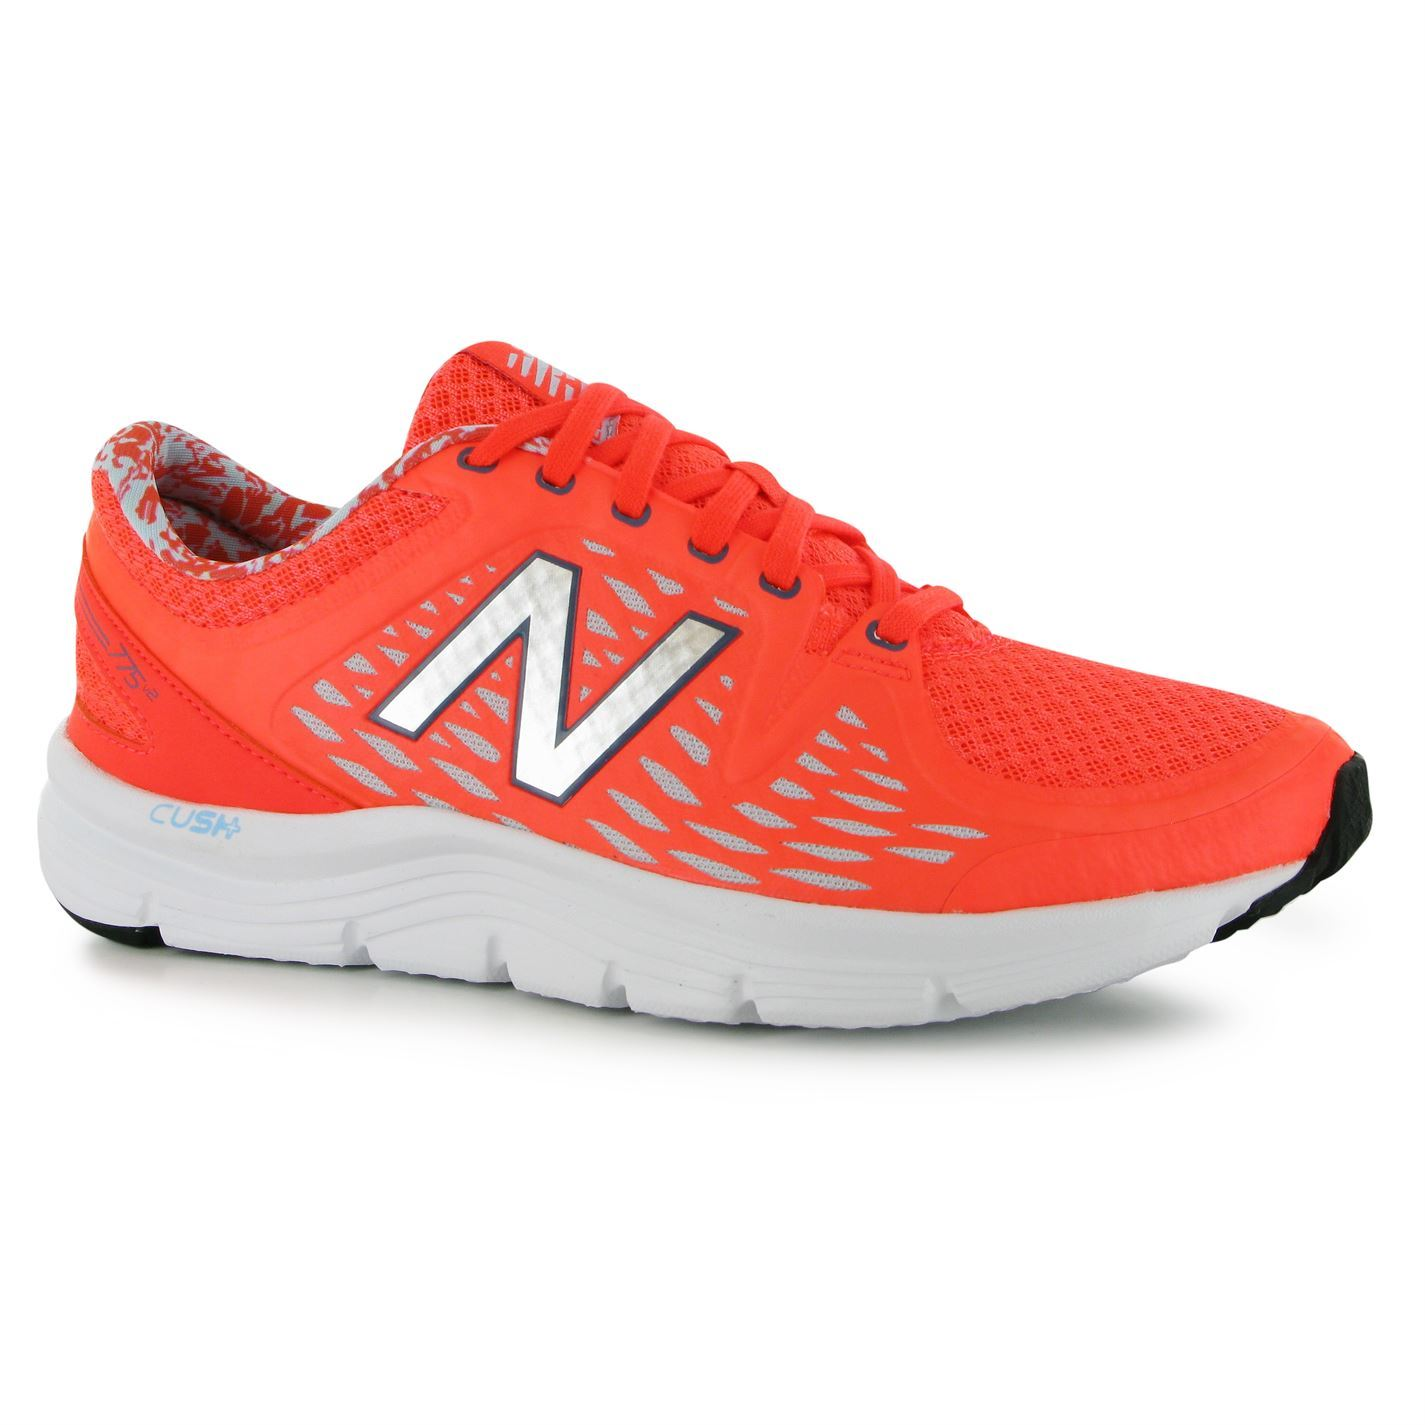 New Balance W775 V2 Running Shoes Womens Coral/Wht